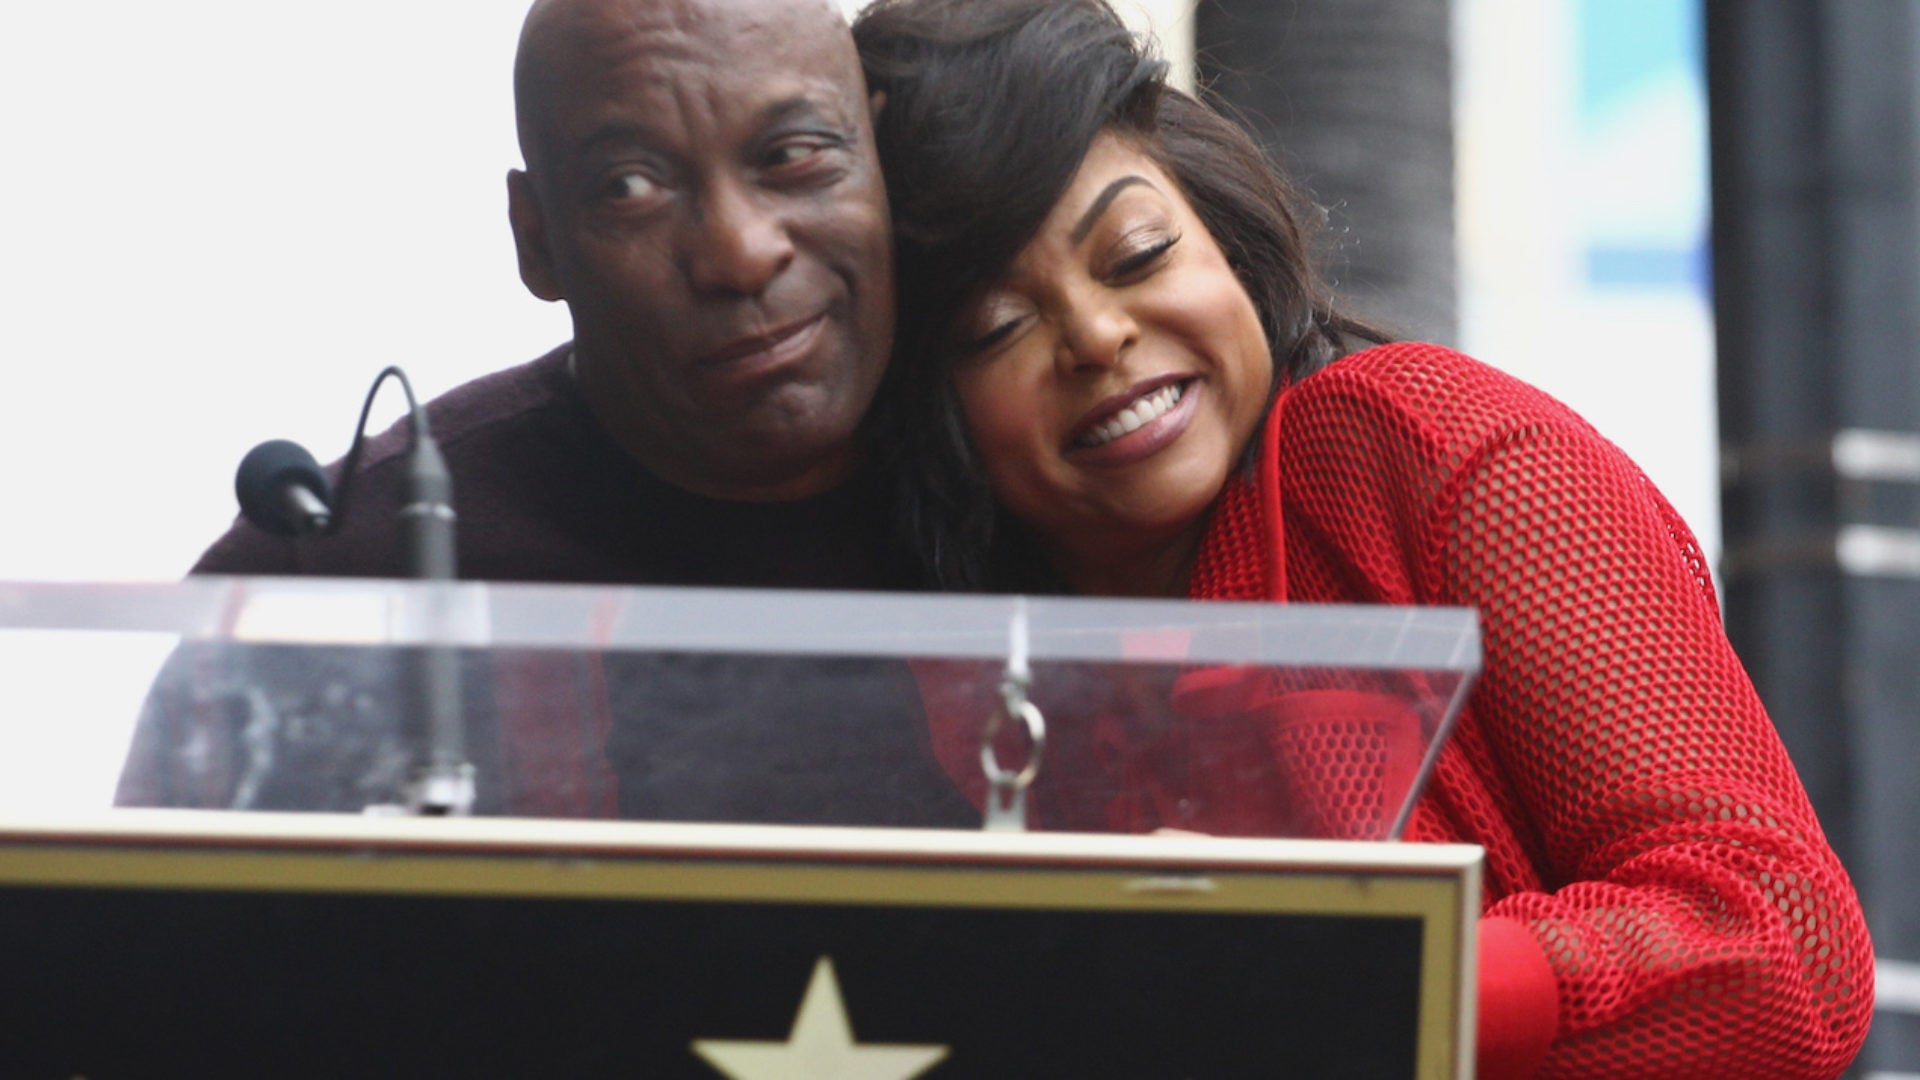 Taraji P. Henson Skipped Met Gala To Attend Funeral of John Singleton